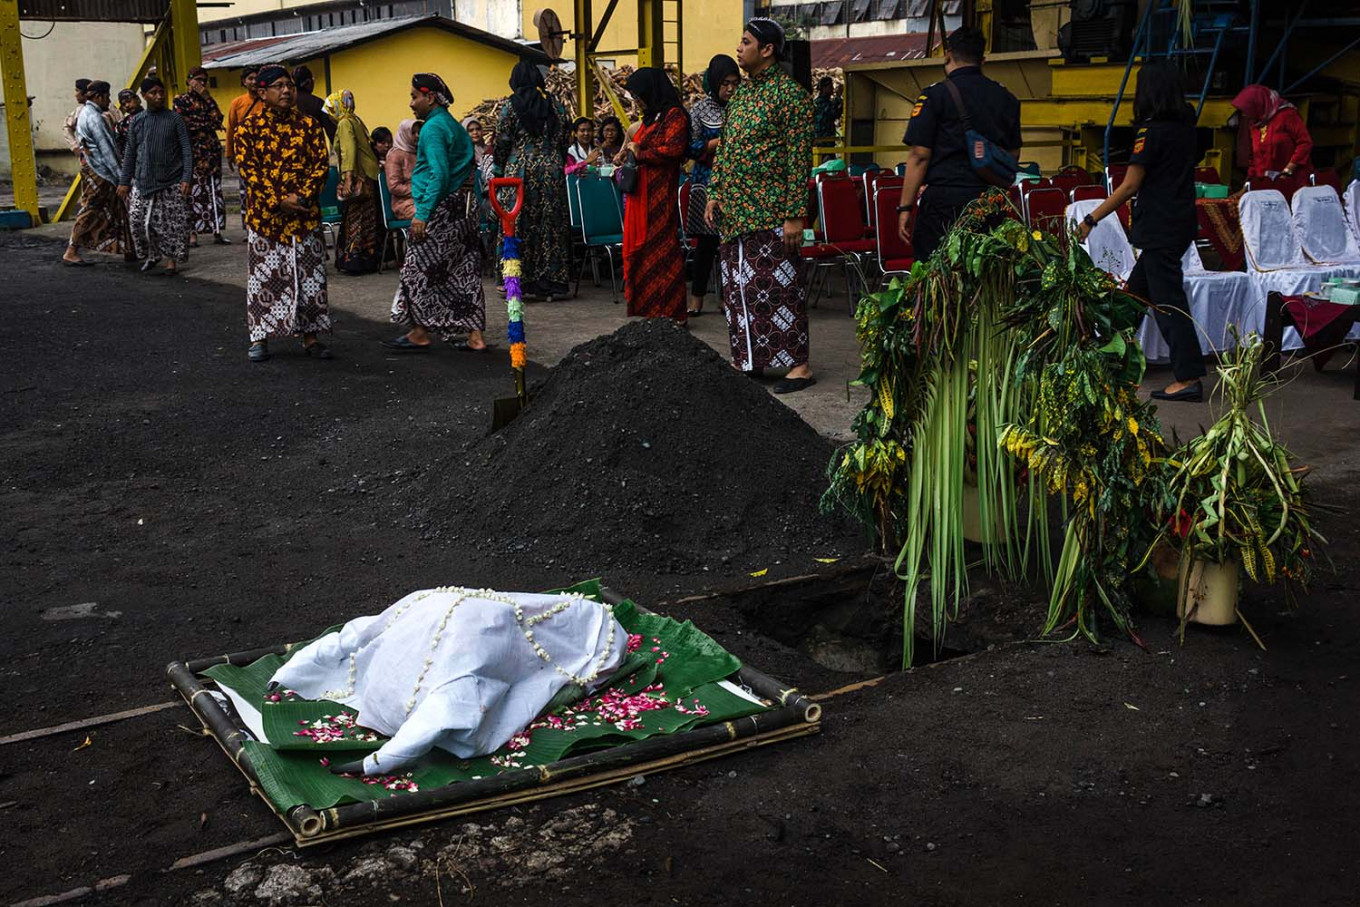 A buffalo head, covered with a white cloth and rose petals, is to be buried in front of the milling station. JP/Anggertimur Lanang Tinarbuko